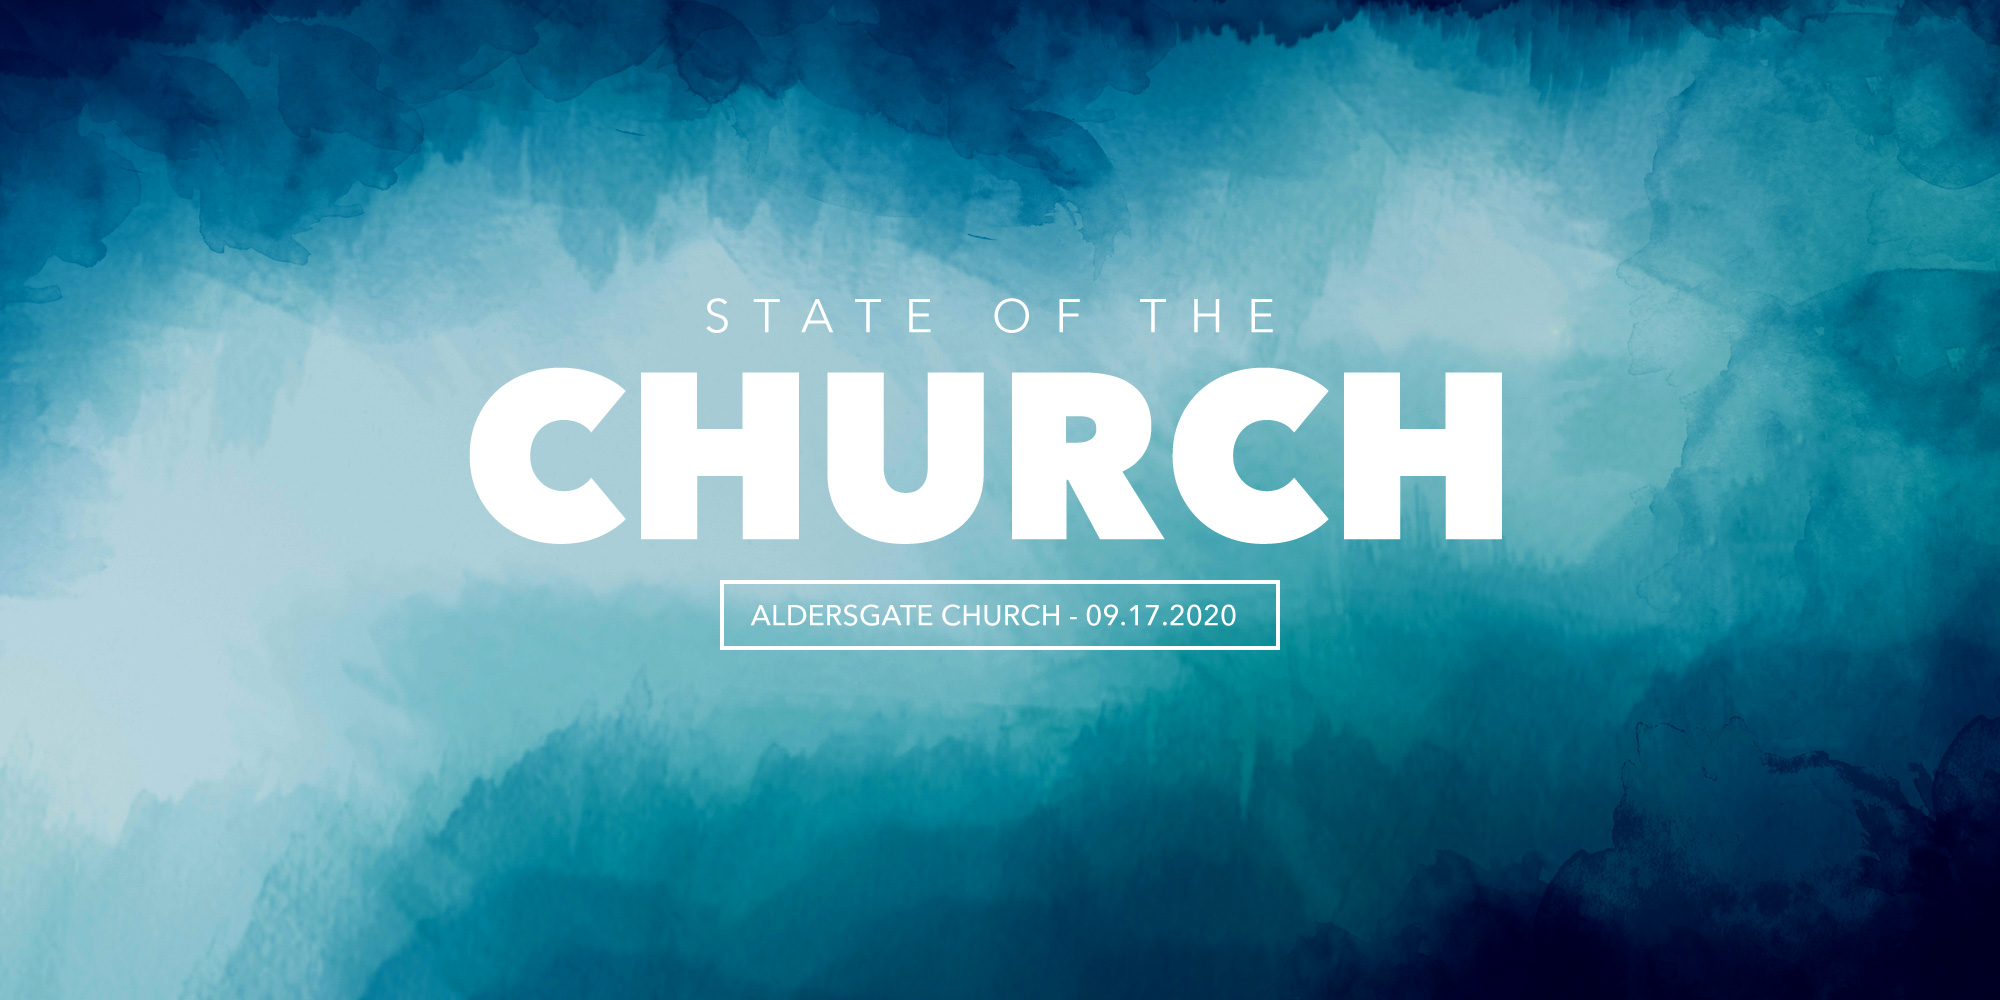 State of the Church - 09.17.2020